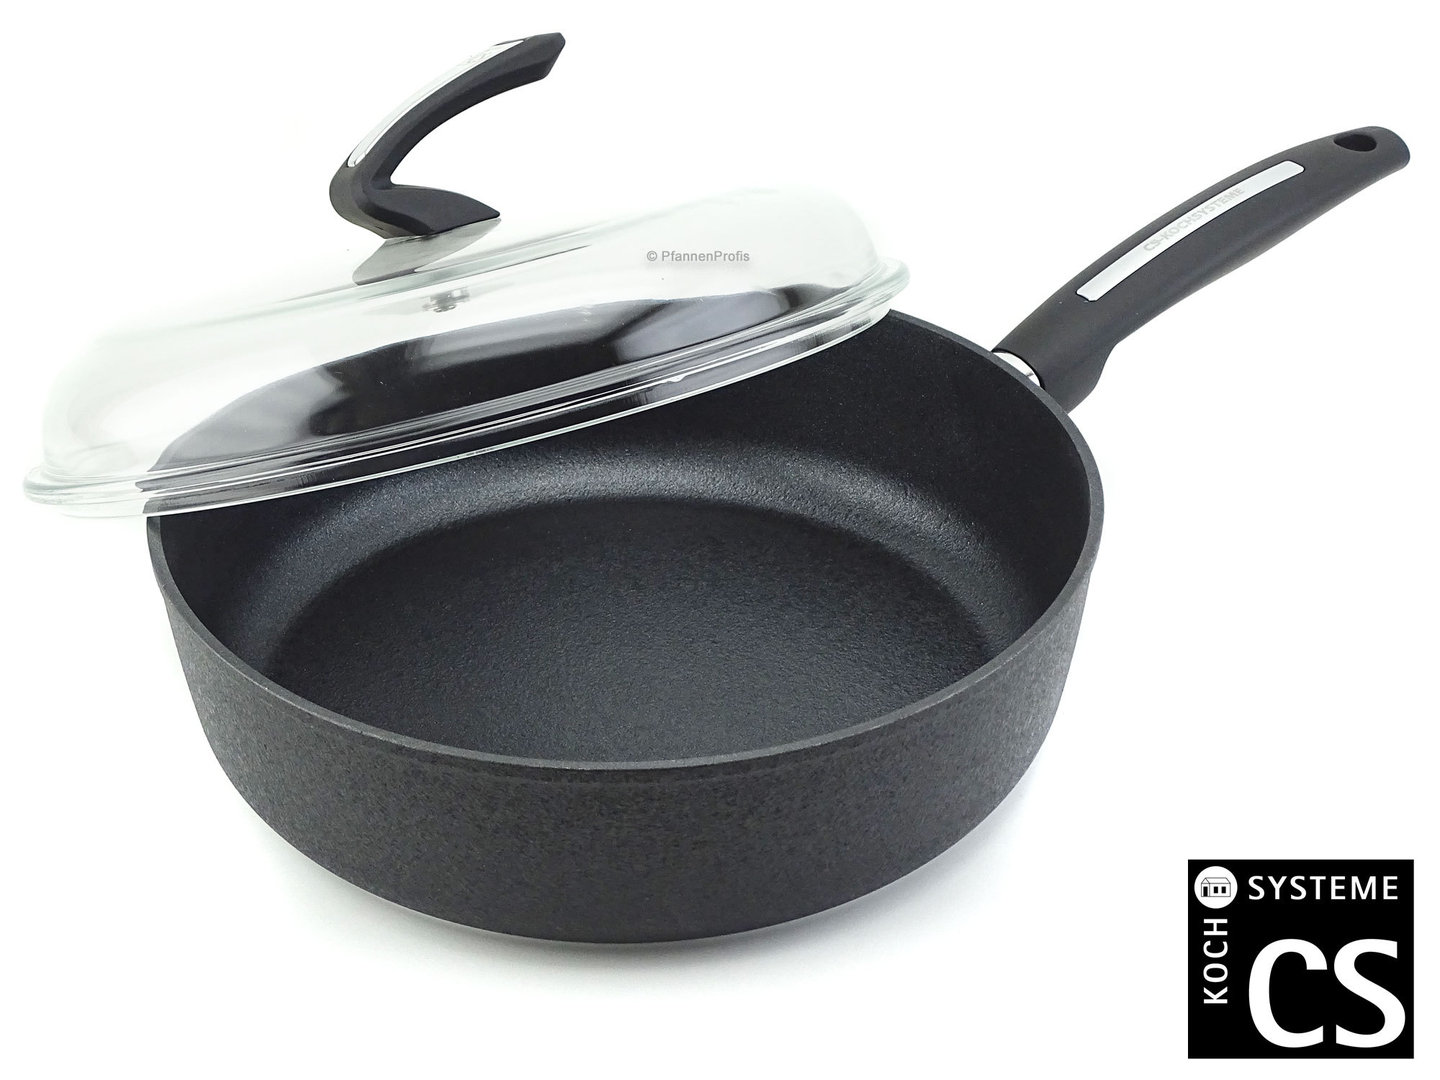 CS KOCHSYSTEME non-stick deep frypan MUENSTER 28 cm with glass lid